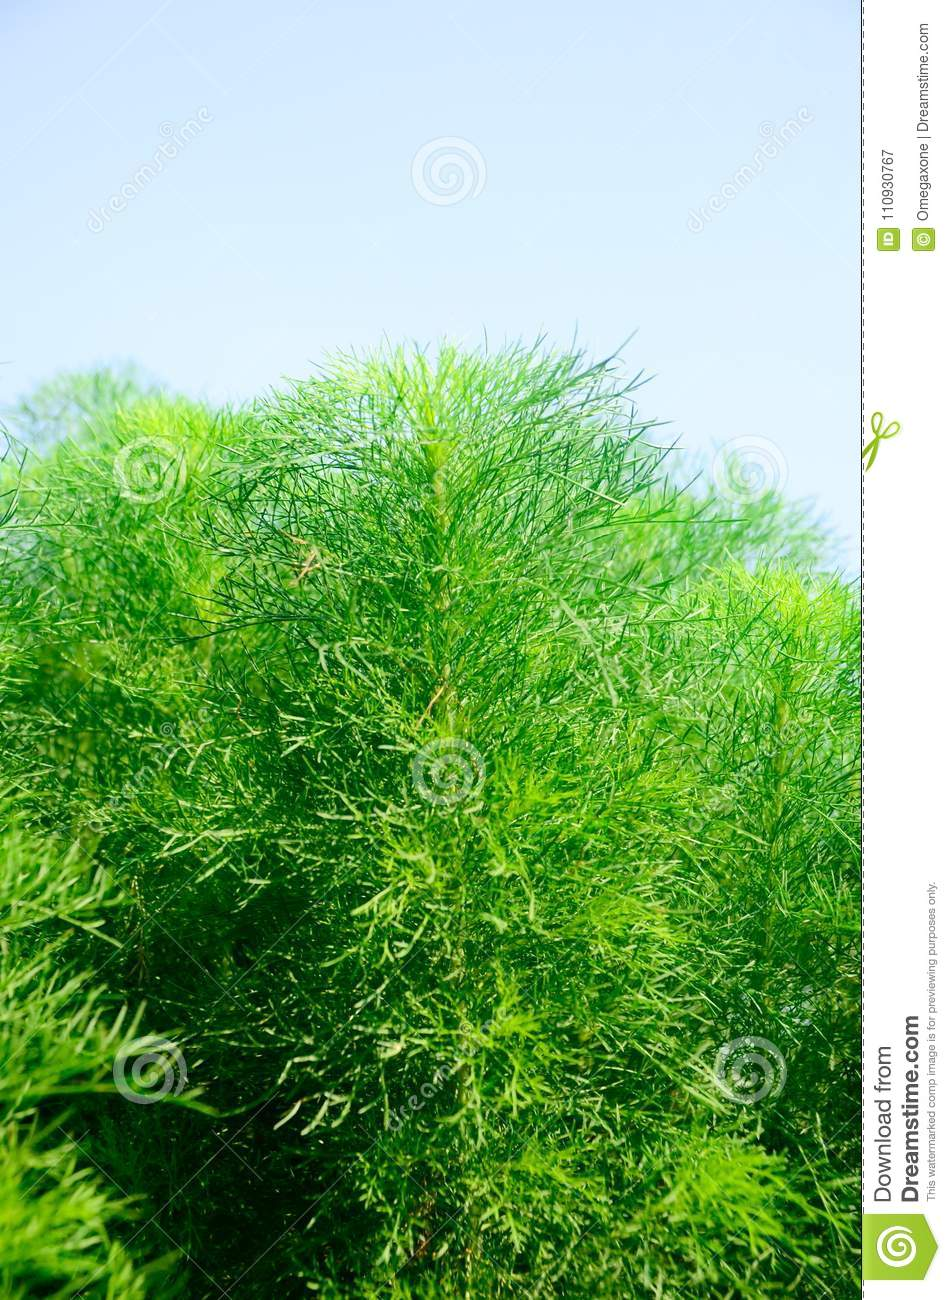 What is useful for dill